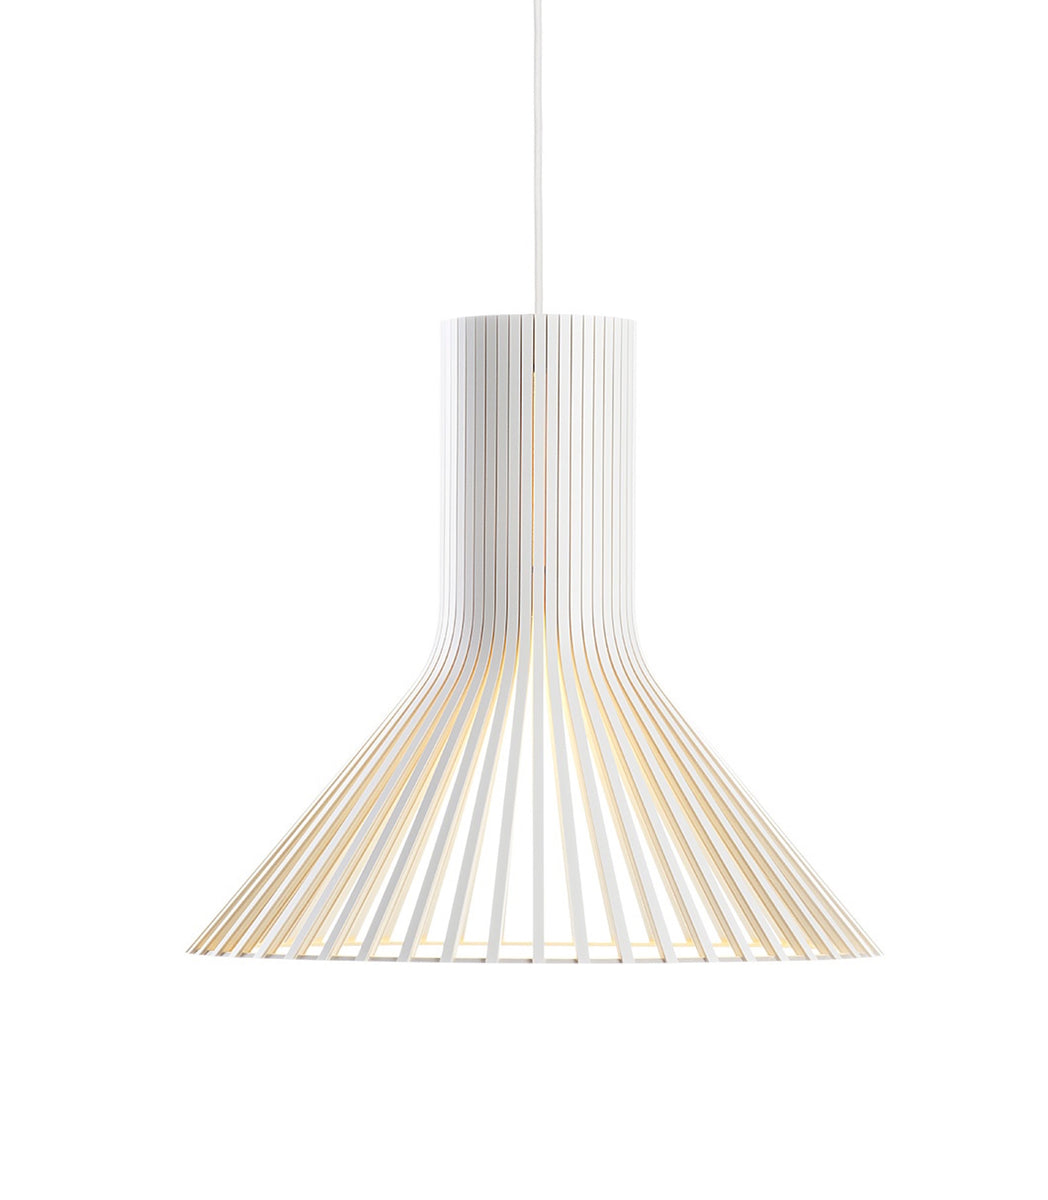 Design Secto Puncto Pendant 4203 White elegant suspension light beam PEFC-certified formpressed birch